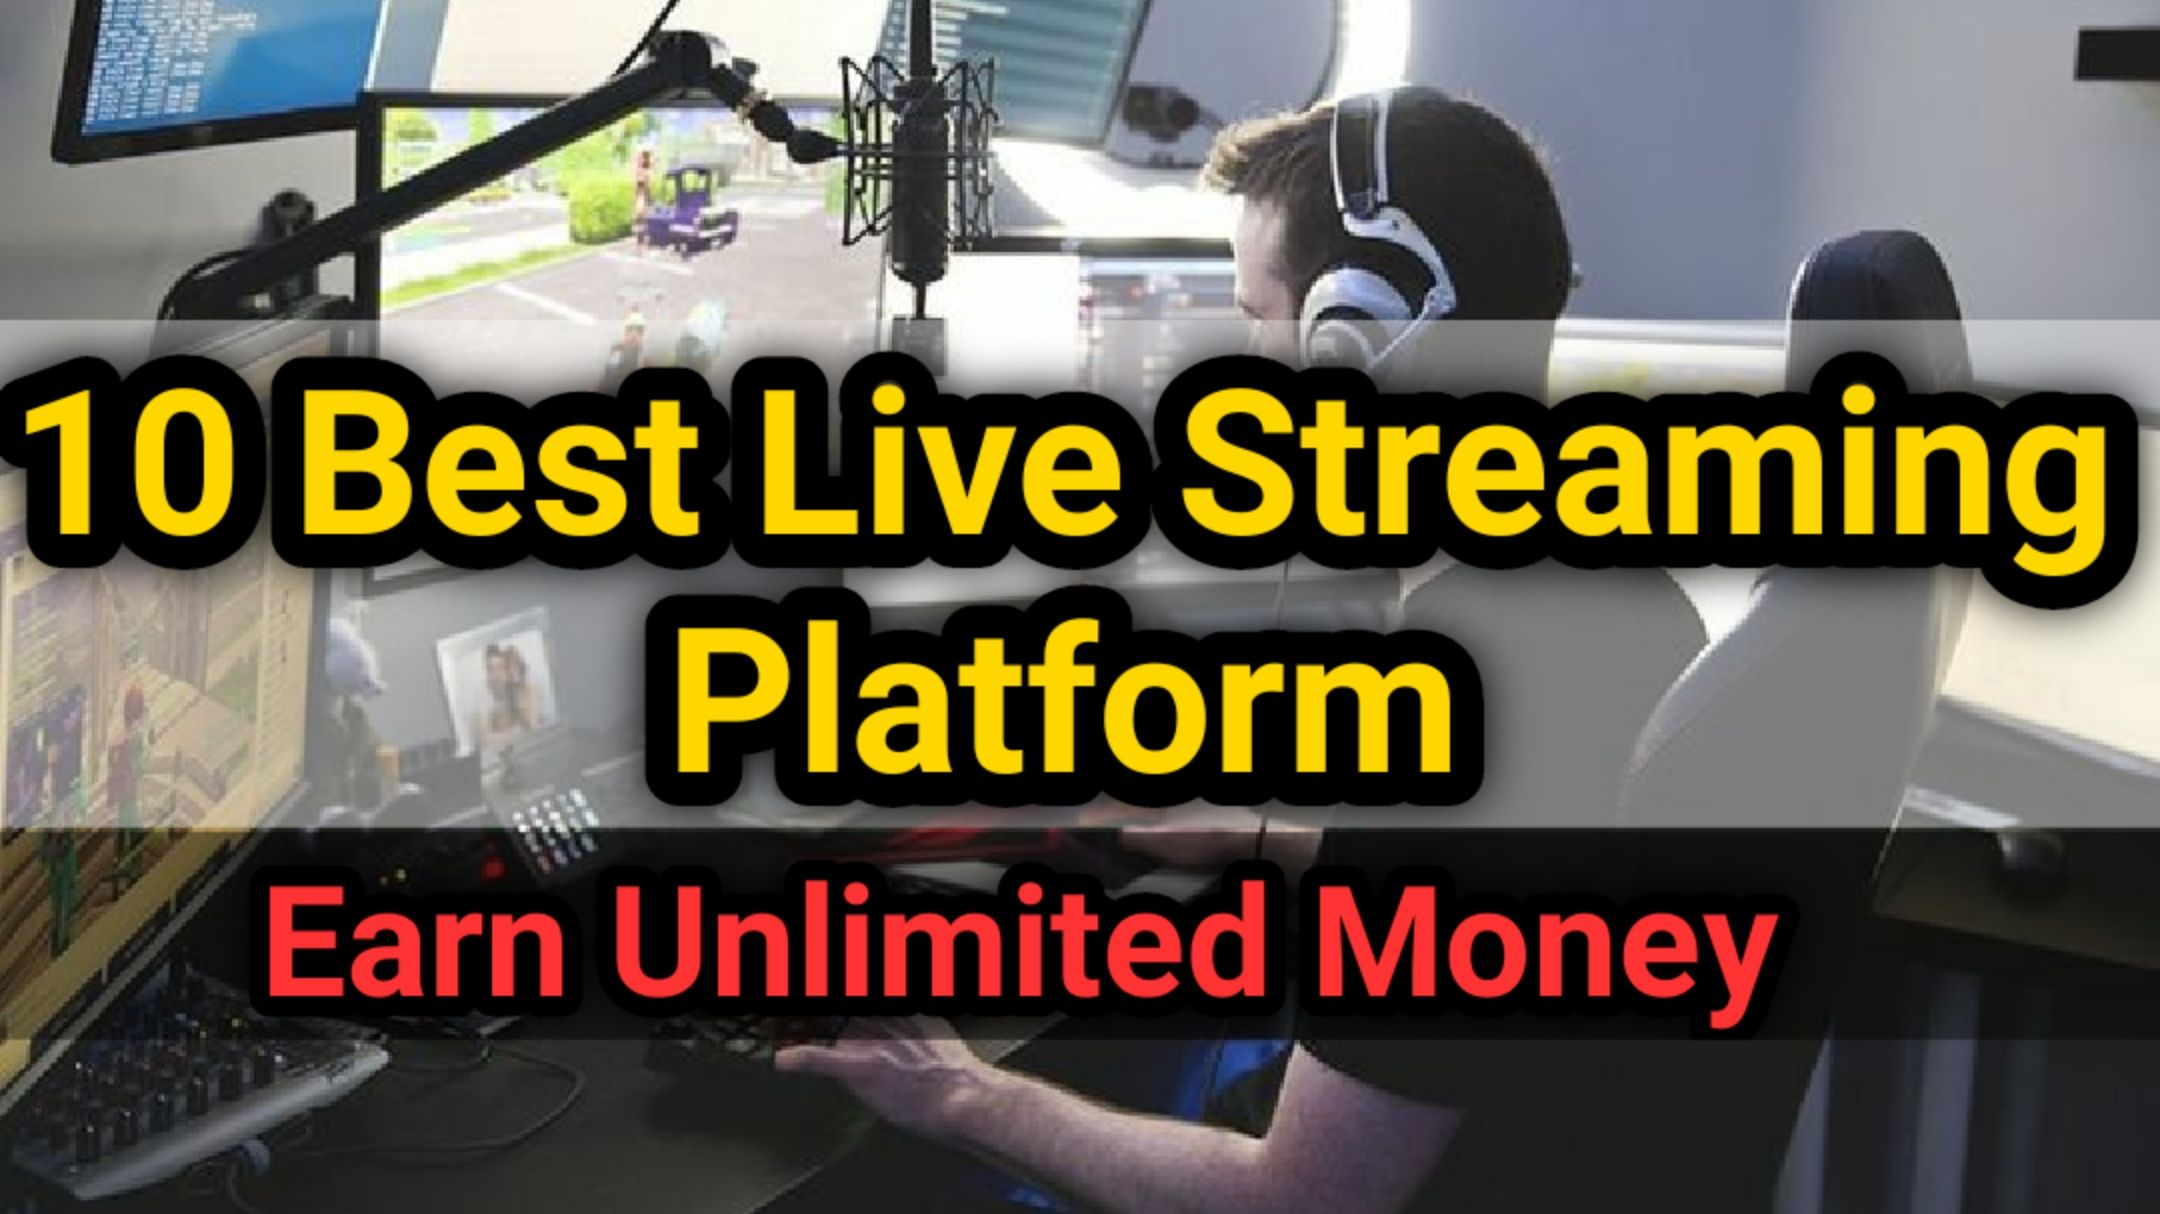 10 Best platform For Live streaming for gaming in 2020 in